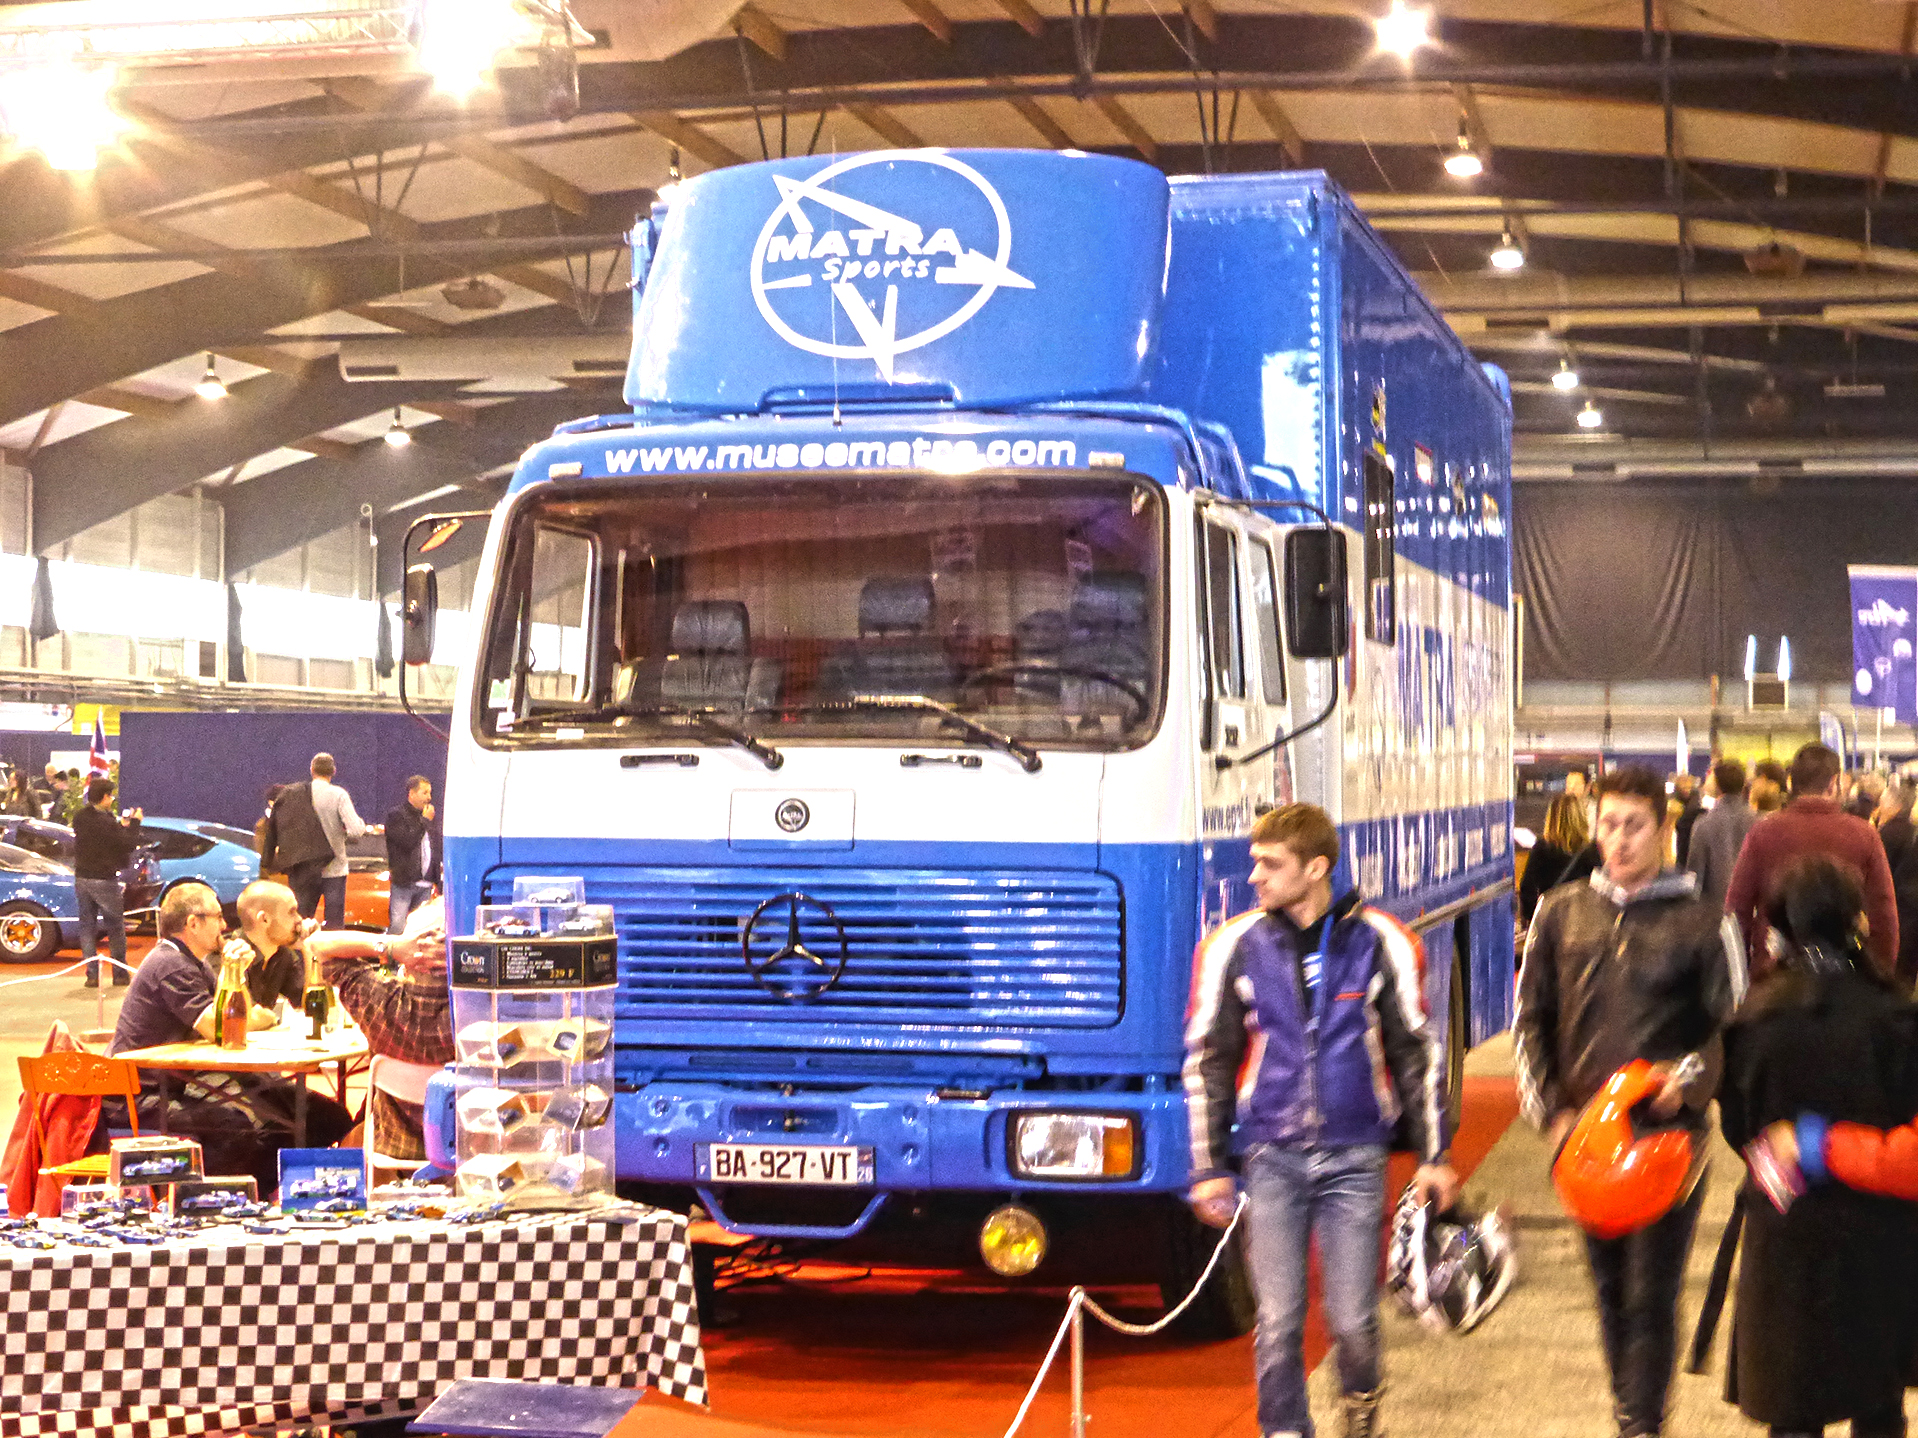 DM - photo - Matra Sport - Camion team / team Truck - Ouest Motors Festival 2015